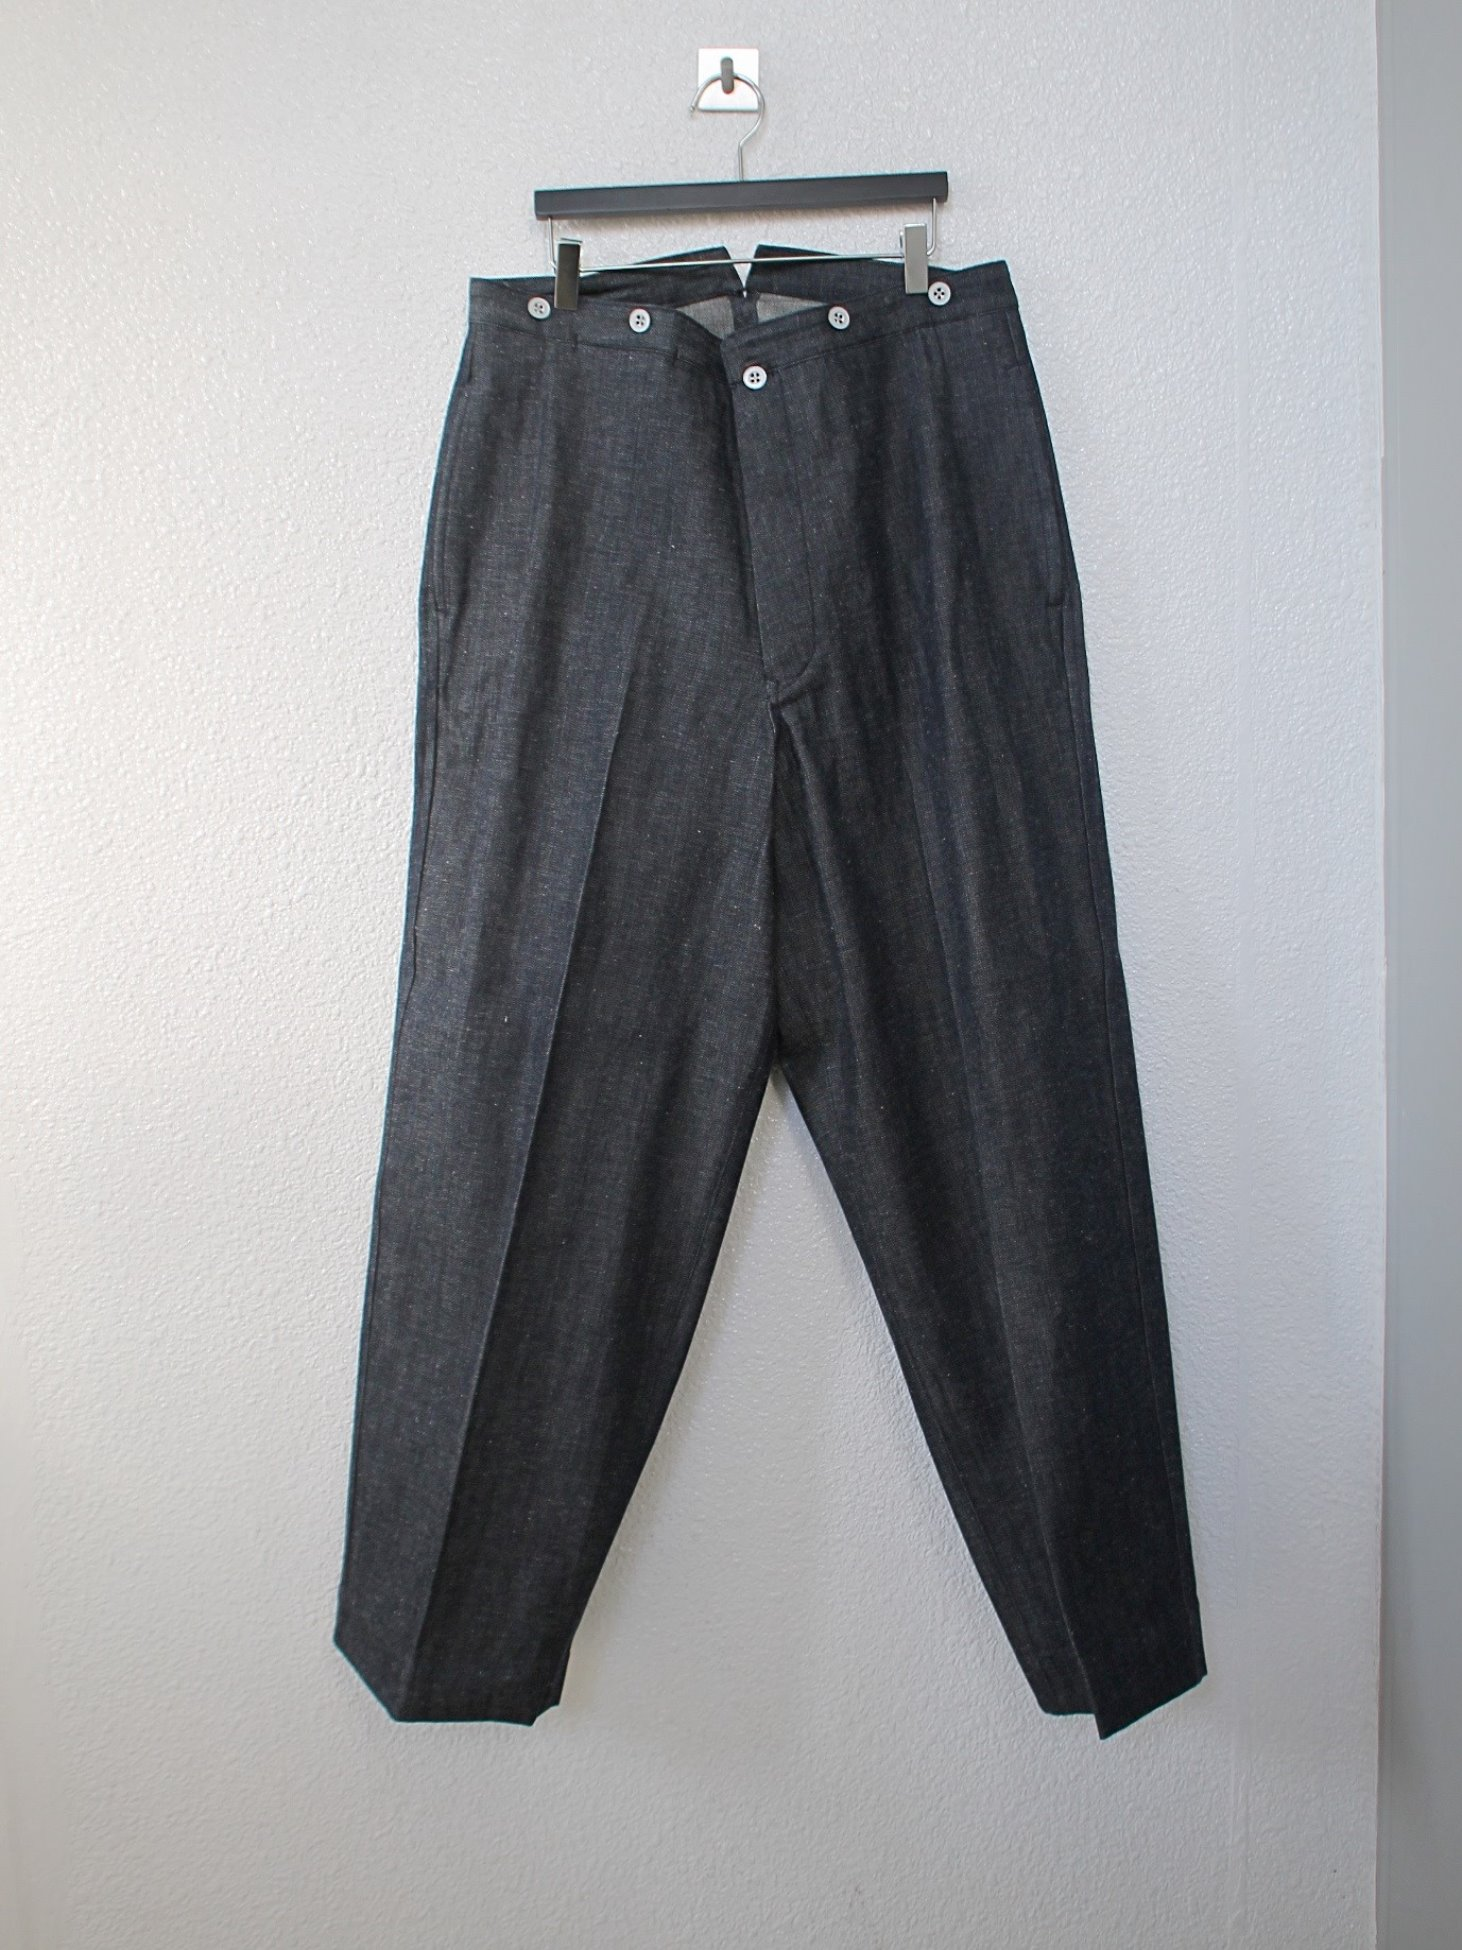 [HAVERSACK] HSP-005 Pants